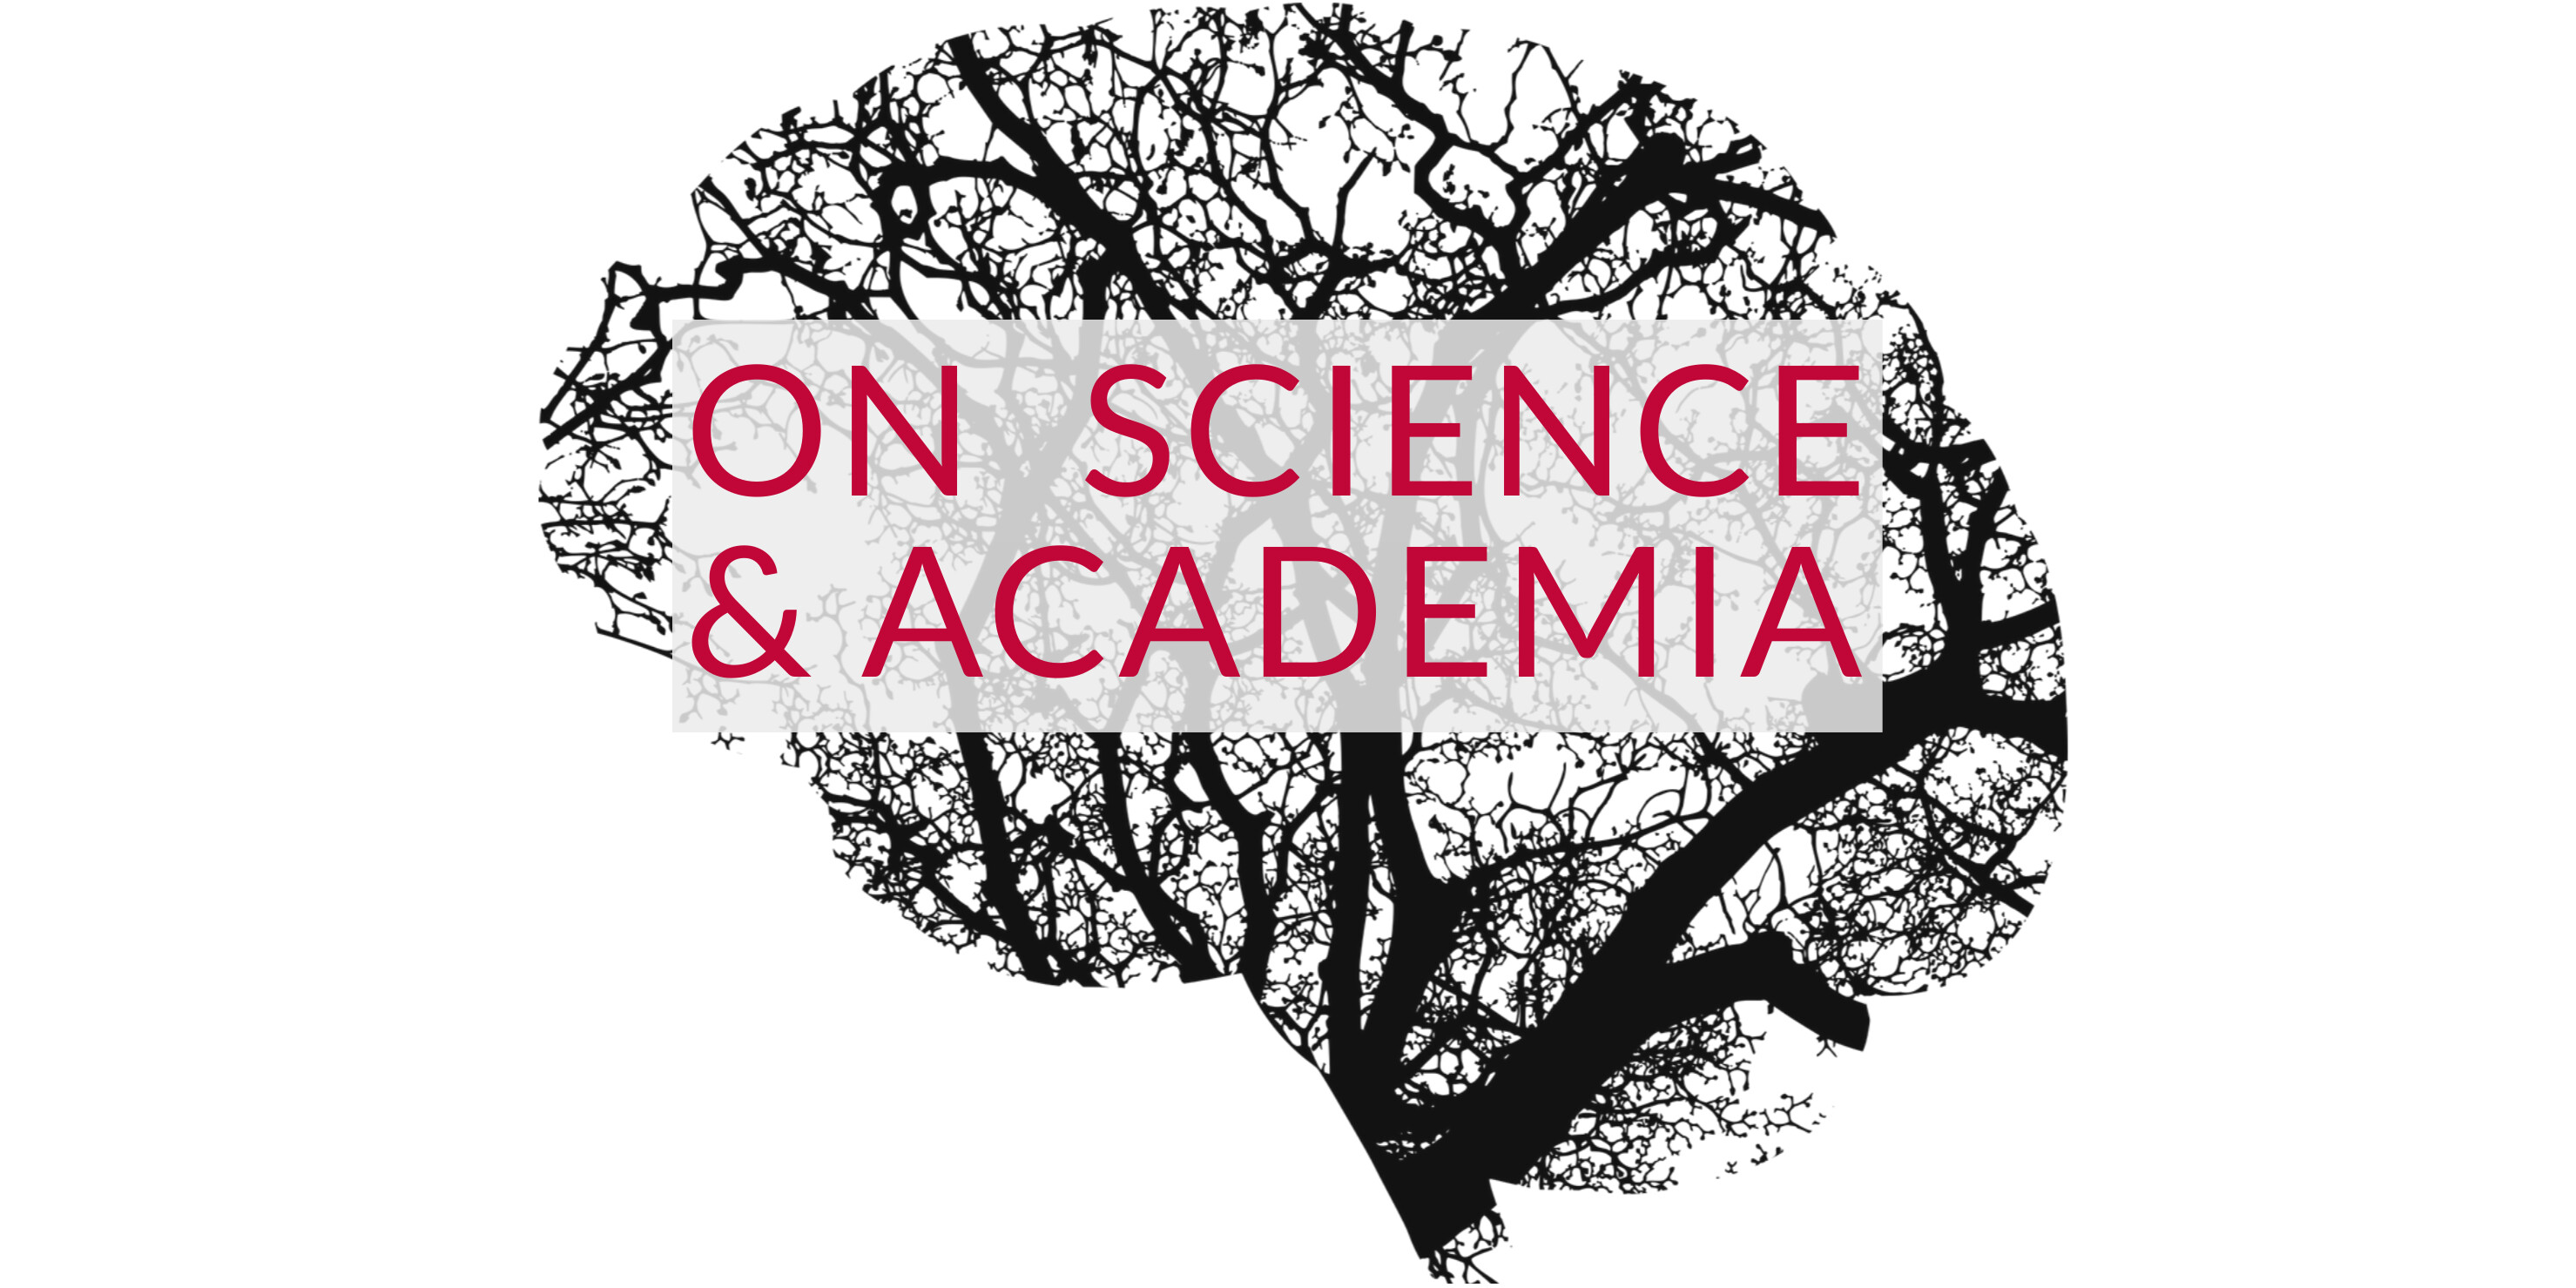 On Science & Academia